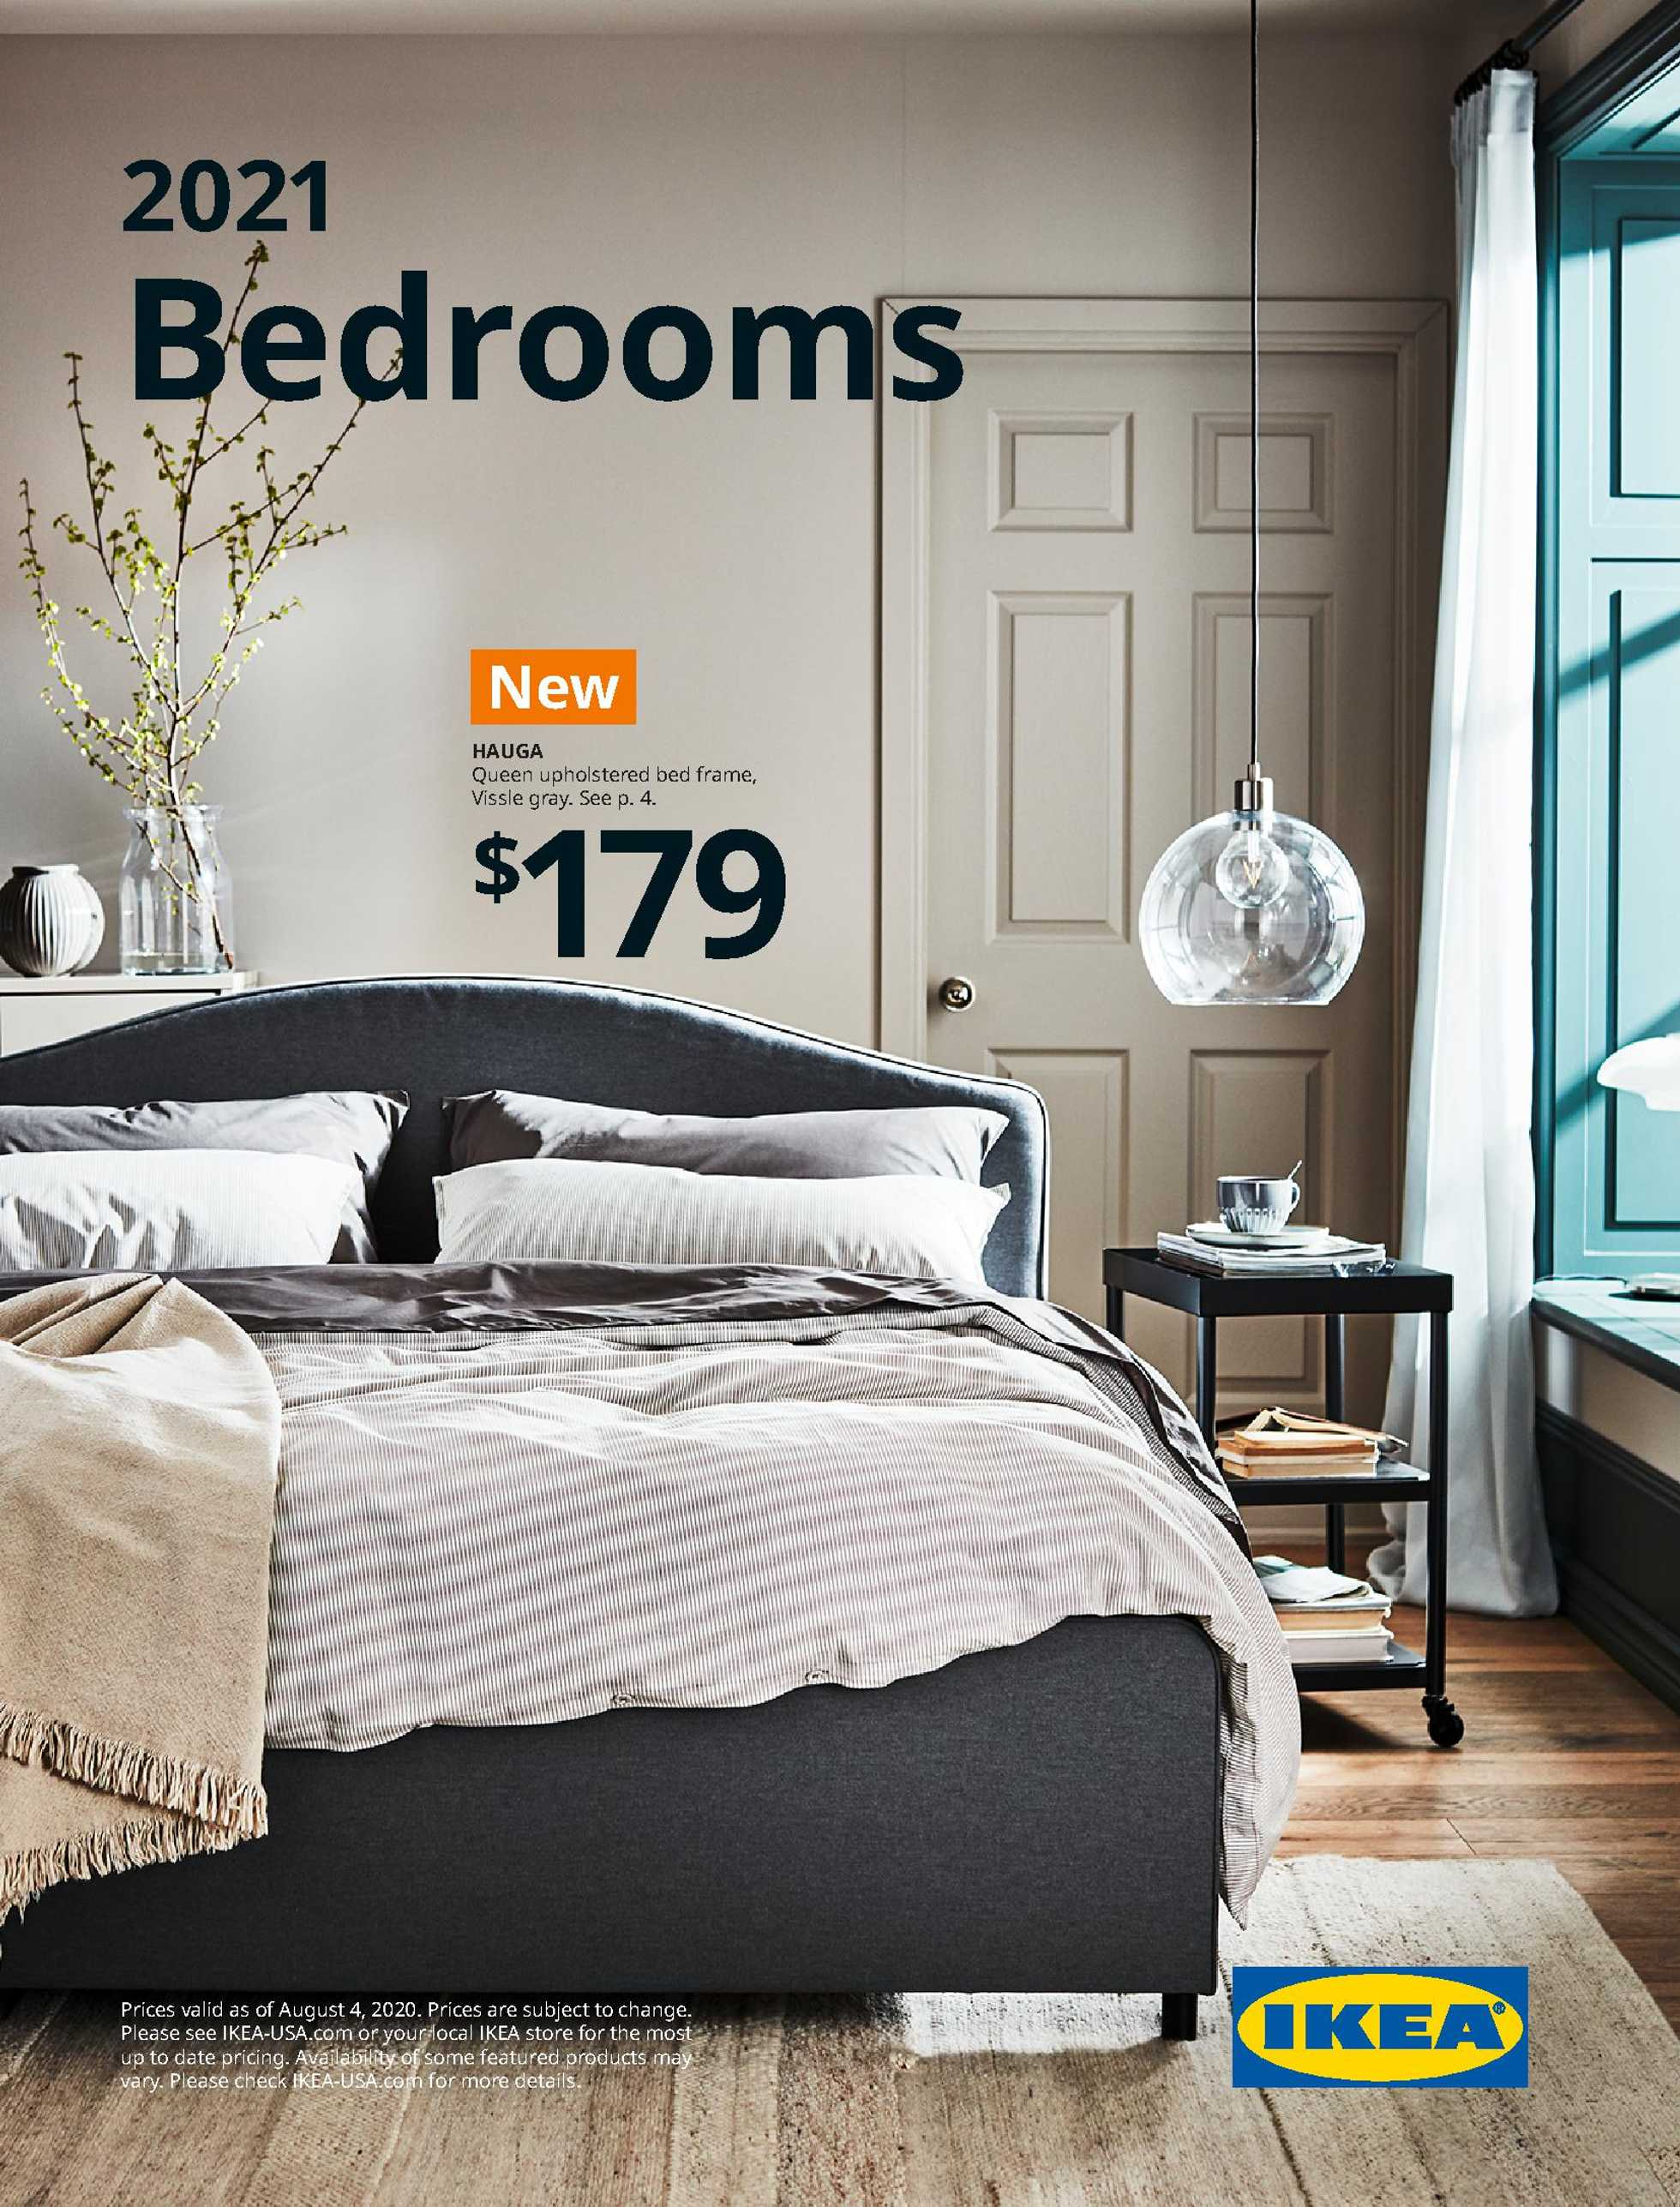 Ikea - deals are valid from 12/01/20 to 08/31/21 - page 1.